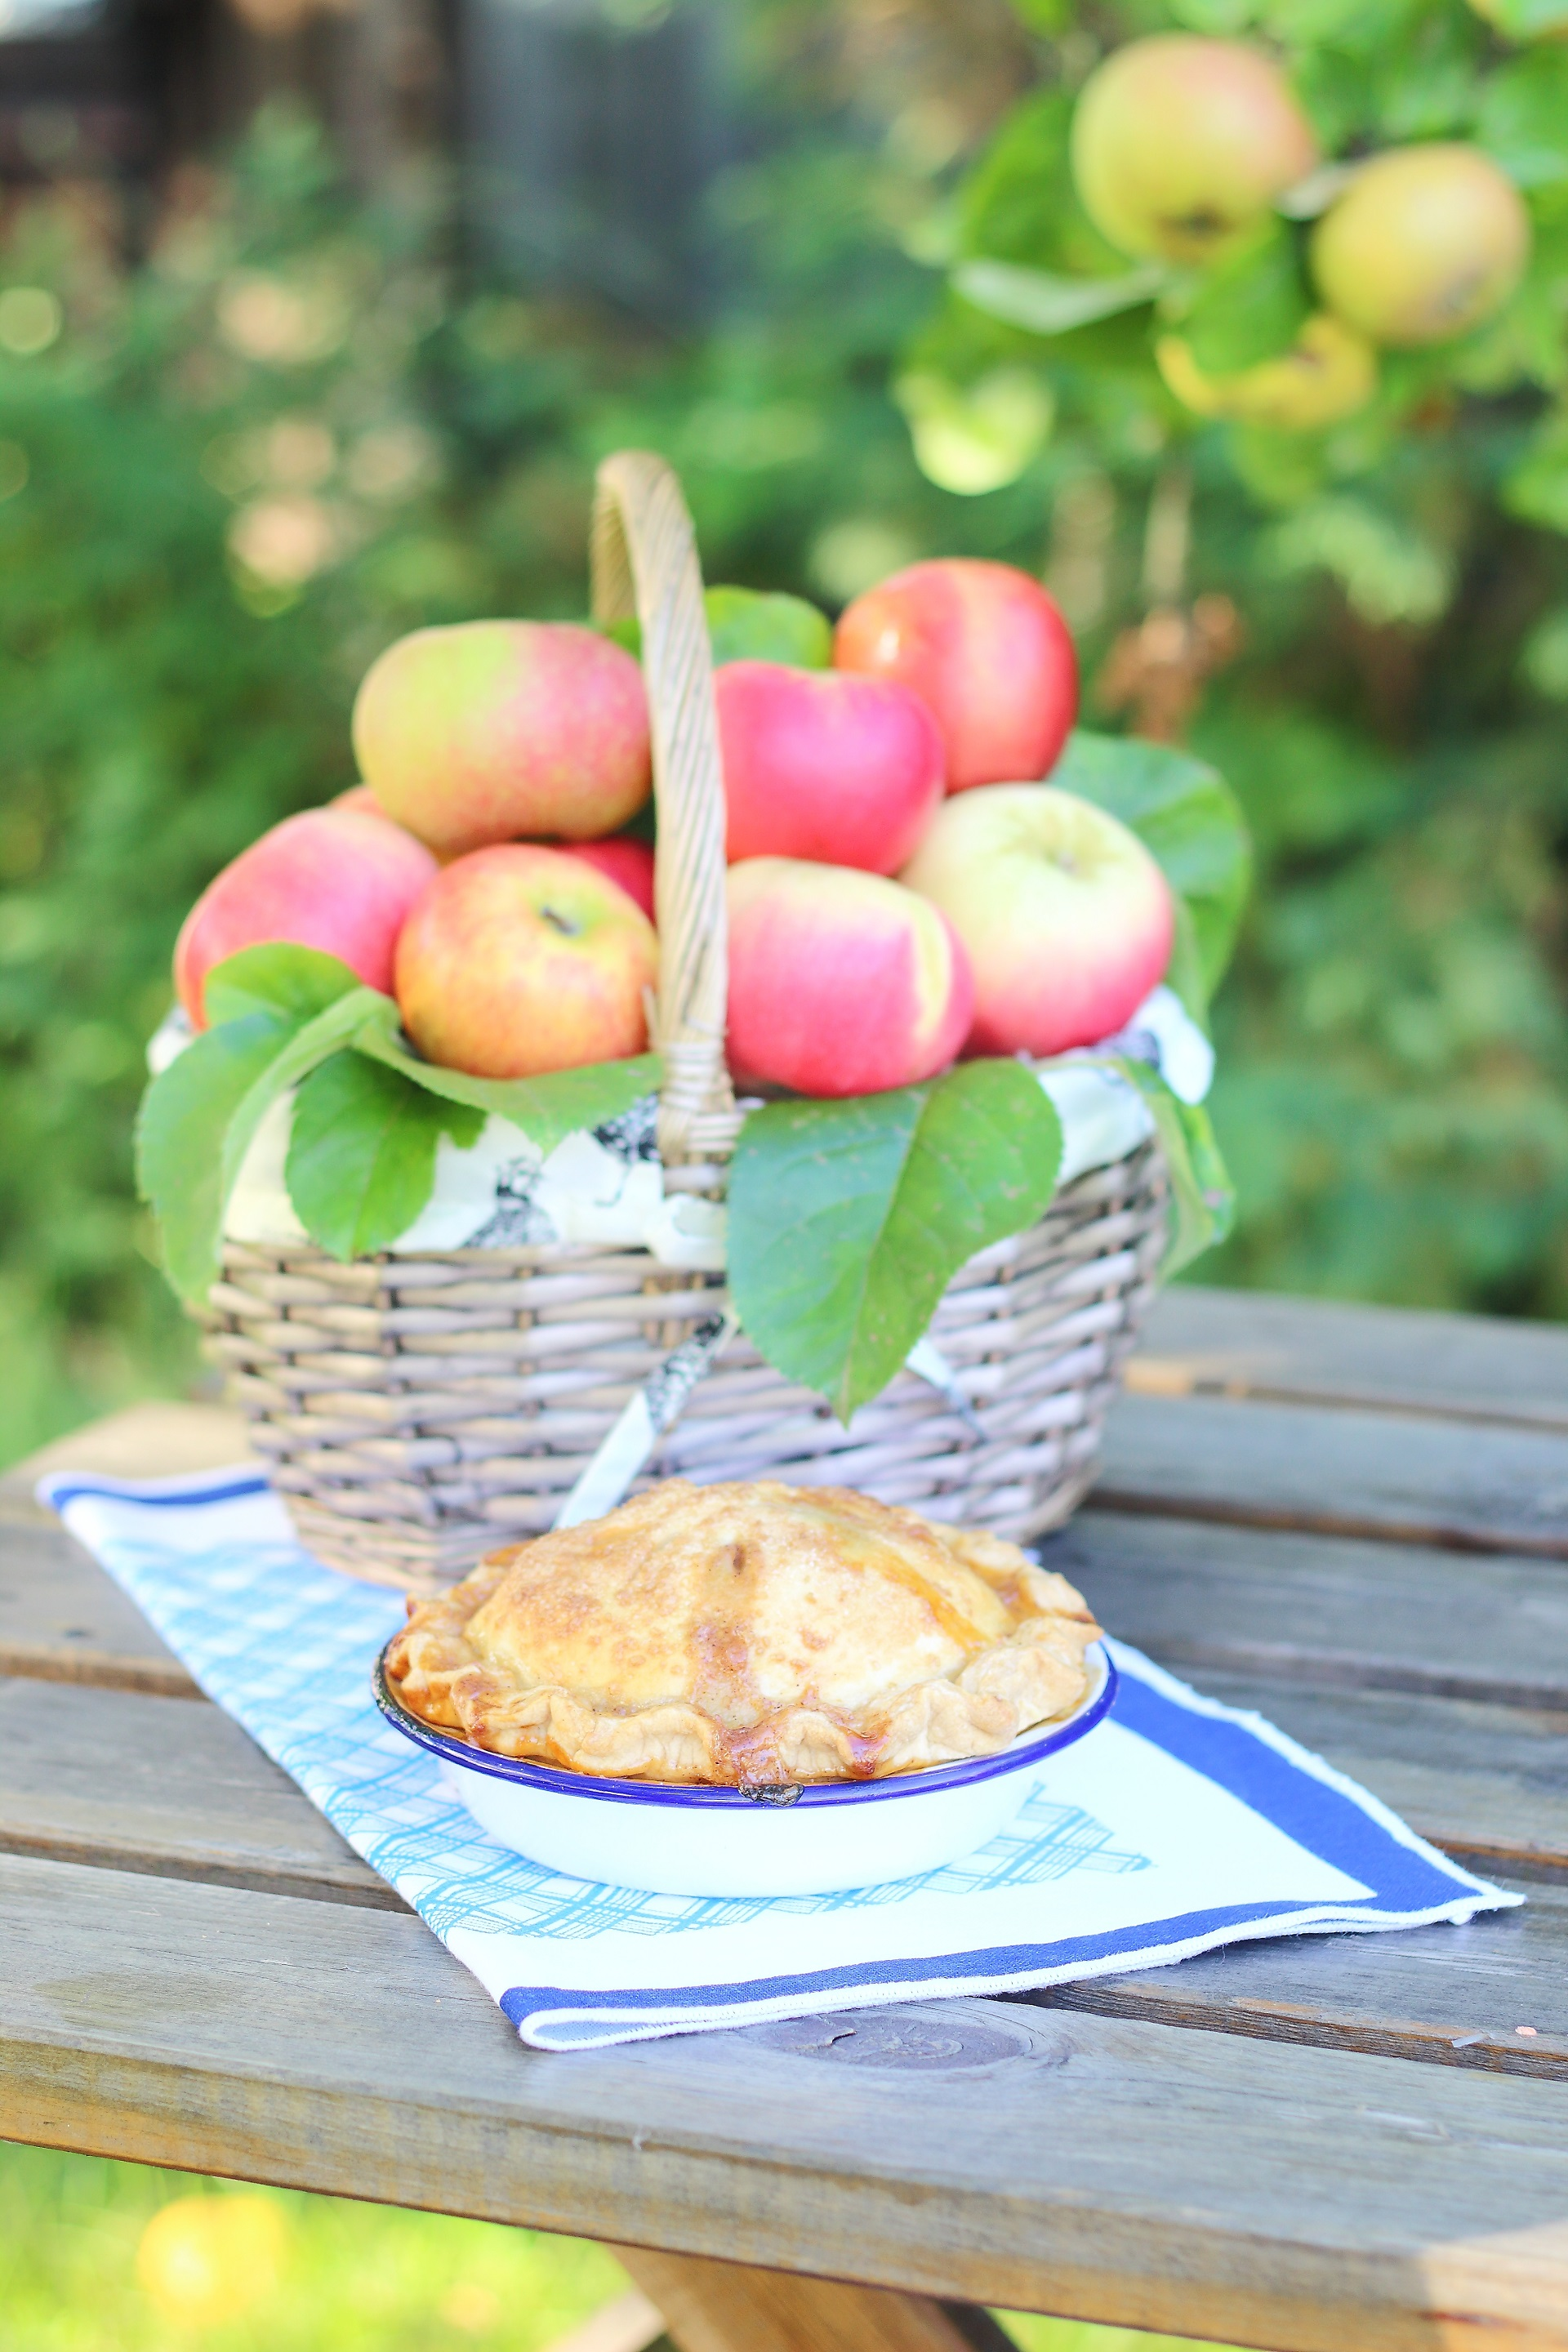 Apple pie in giardino